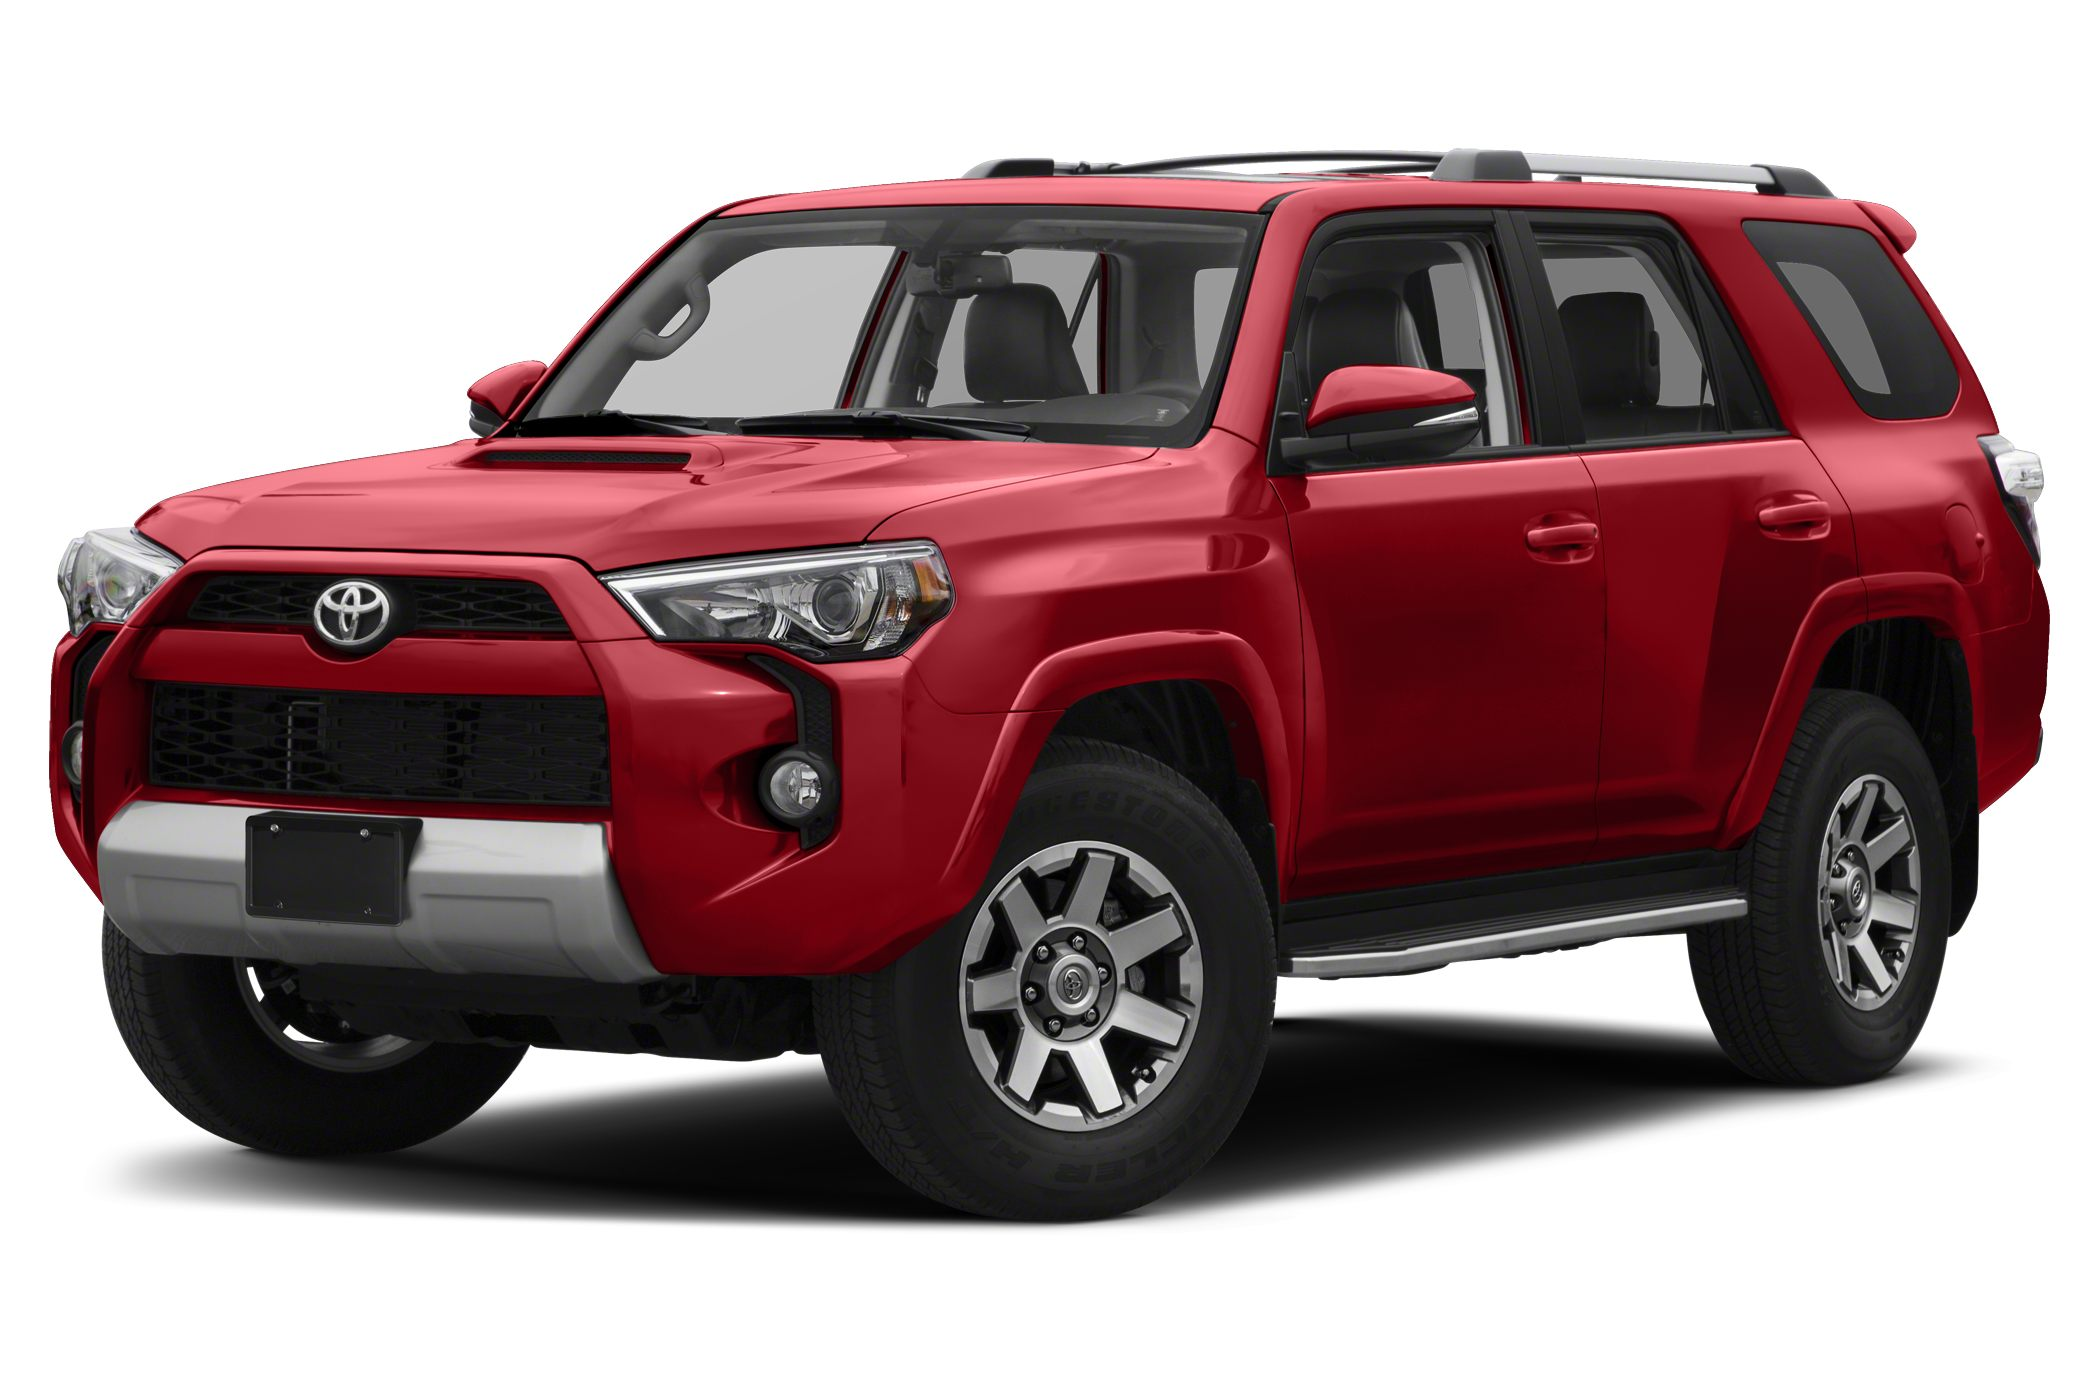 2016 Toyota 4Runner Trail Westboro Toyota is proud to present HASSLE FREE BUYING EXPERIENCE with u